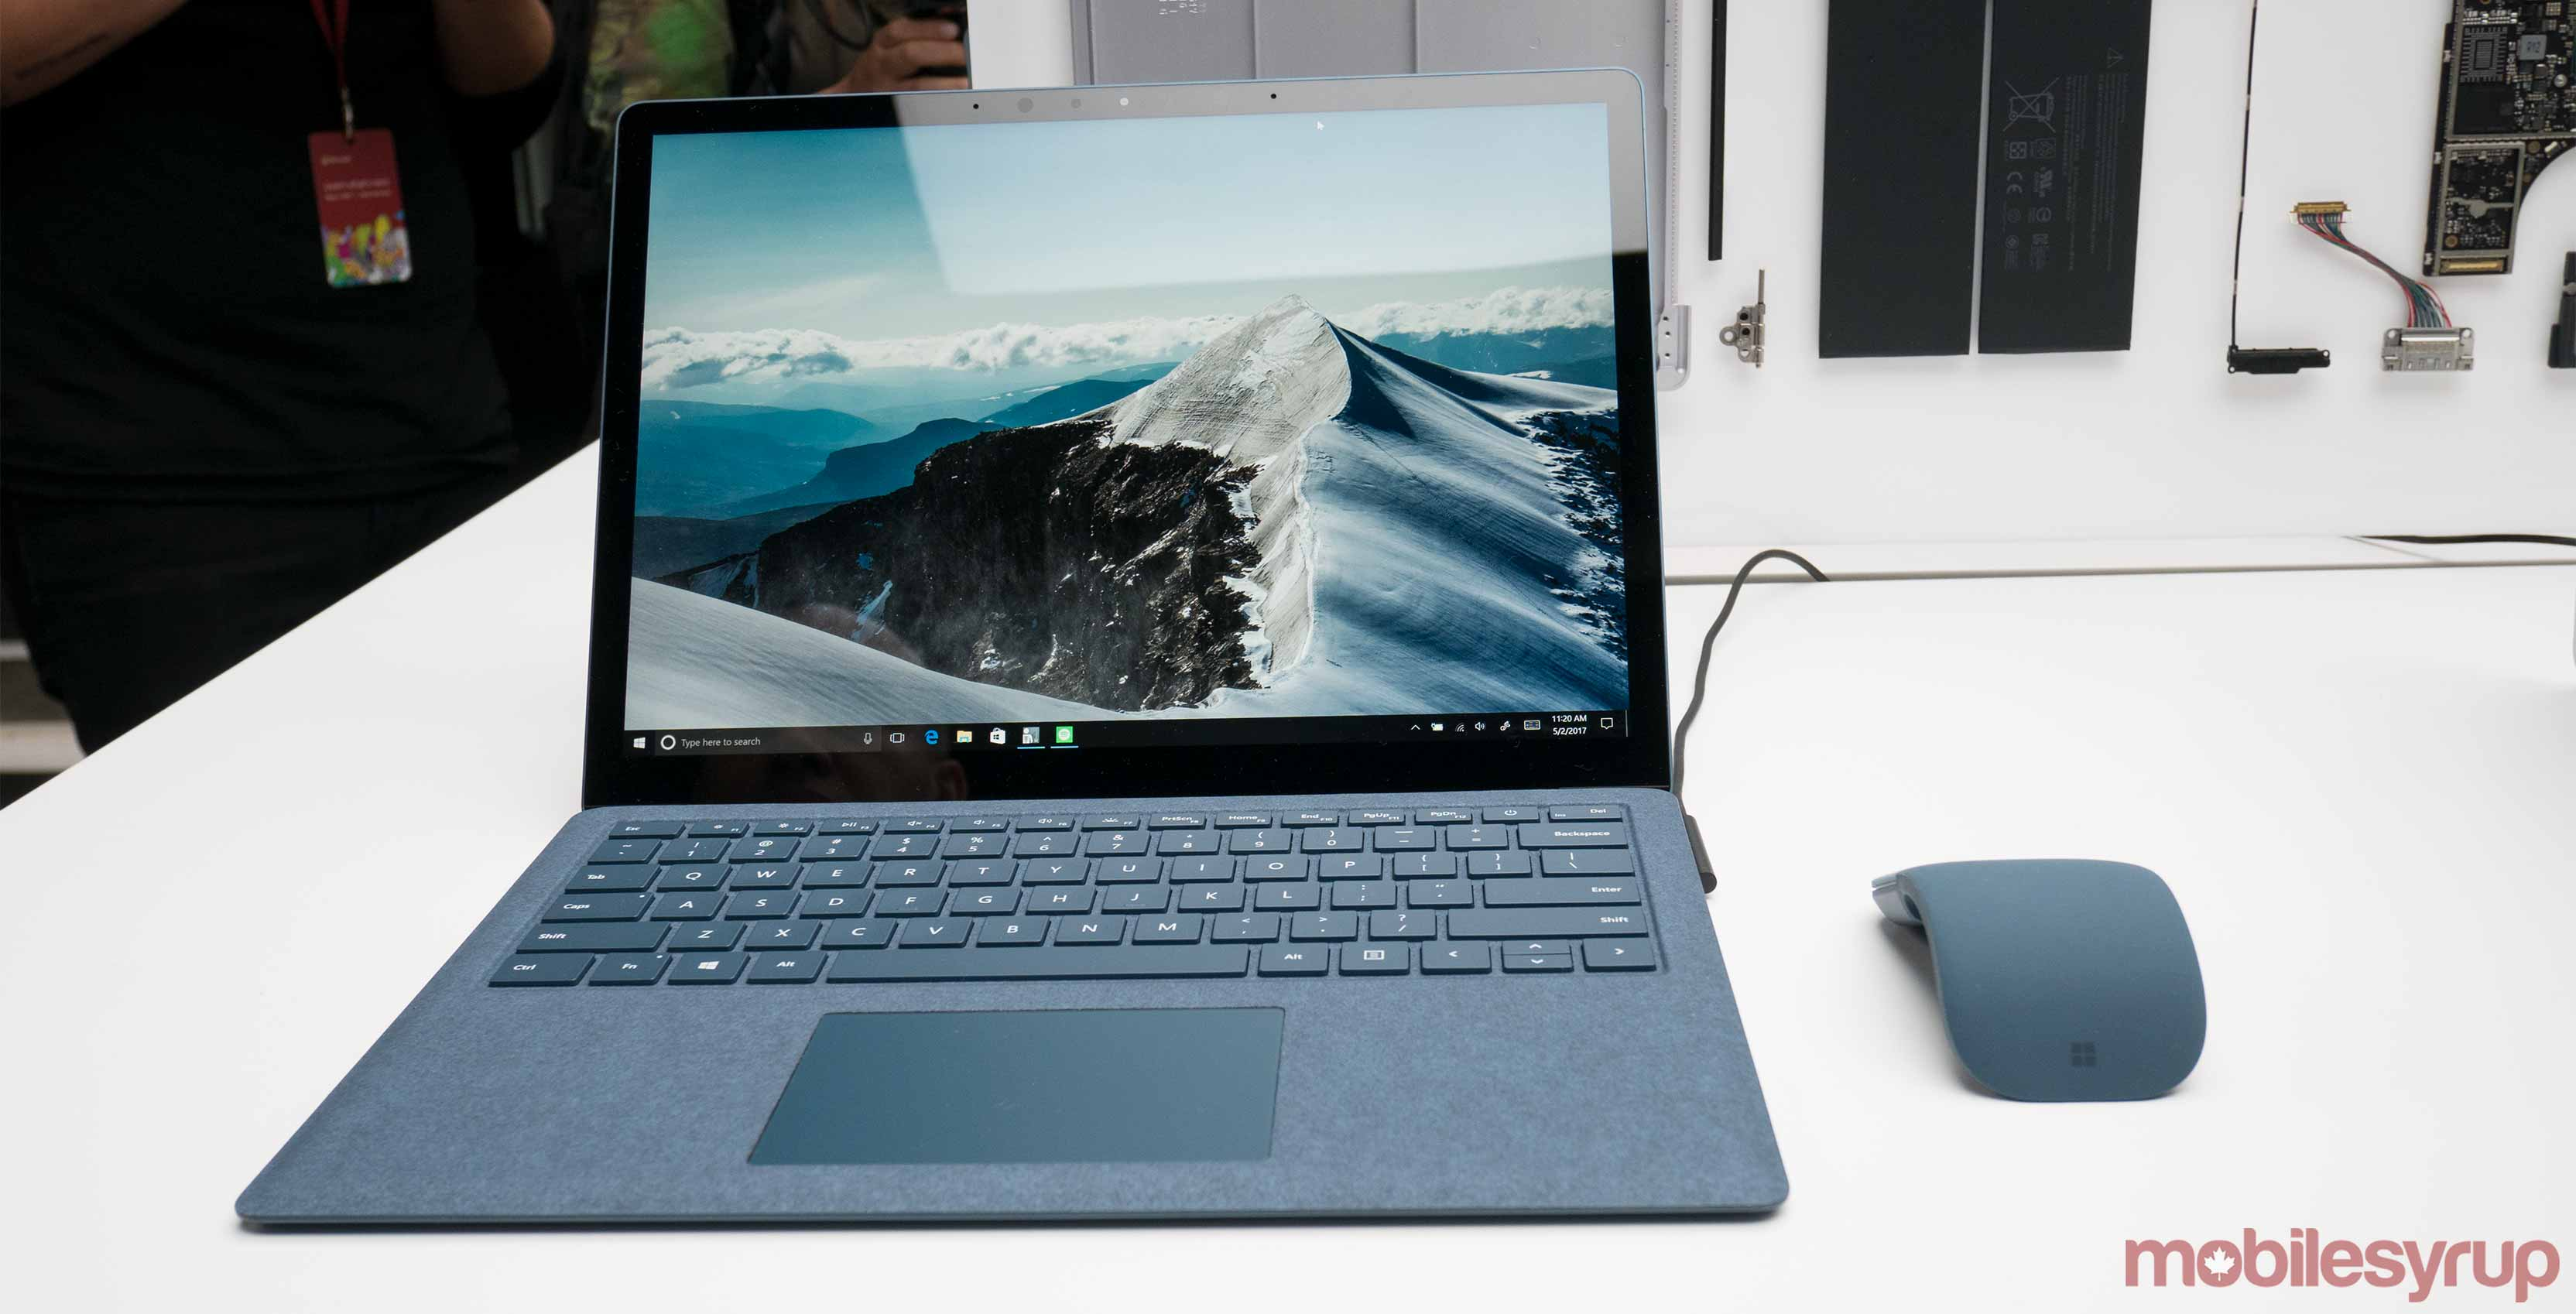 Microsoft S Core I5 Surface Laptop Will Be Available In Canada On June 15